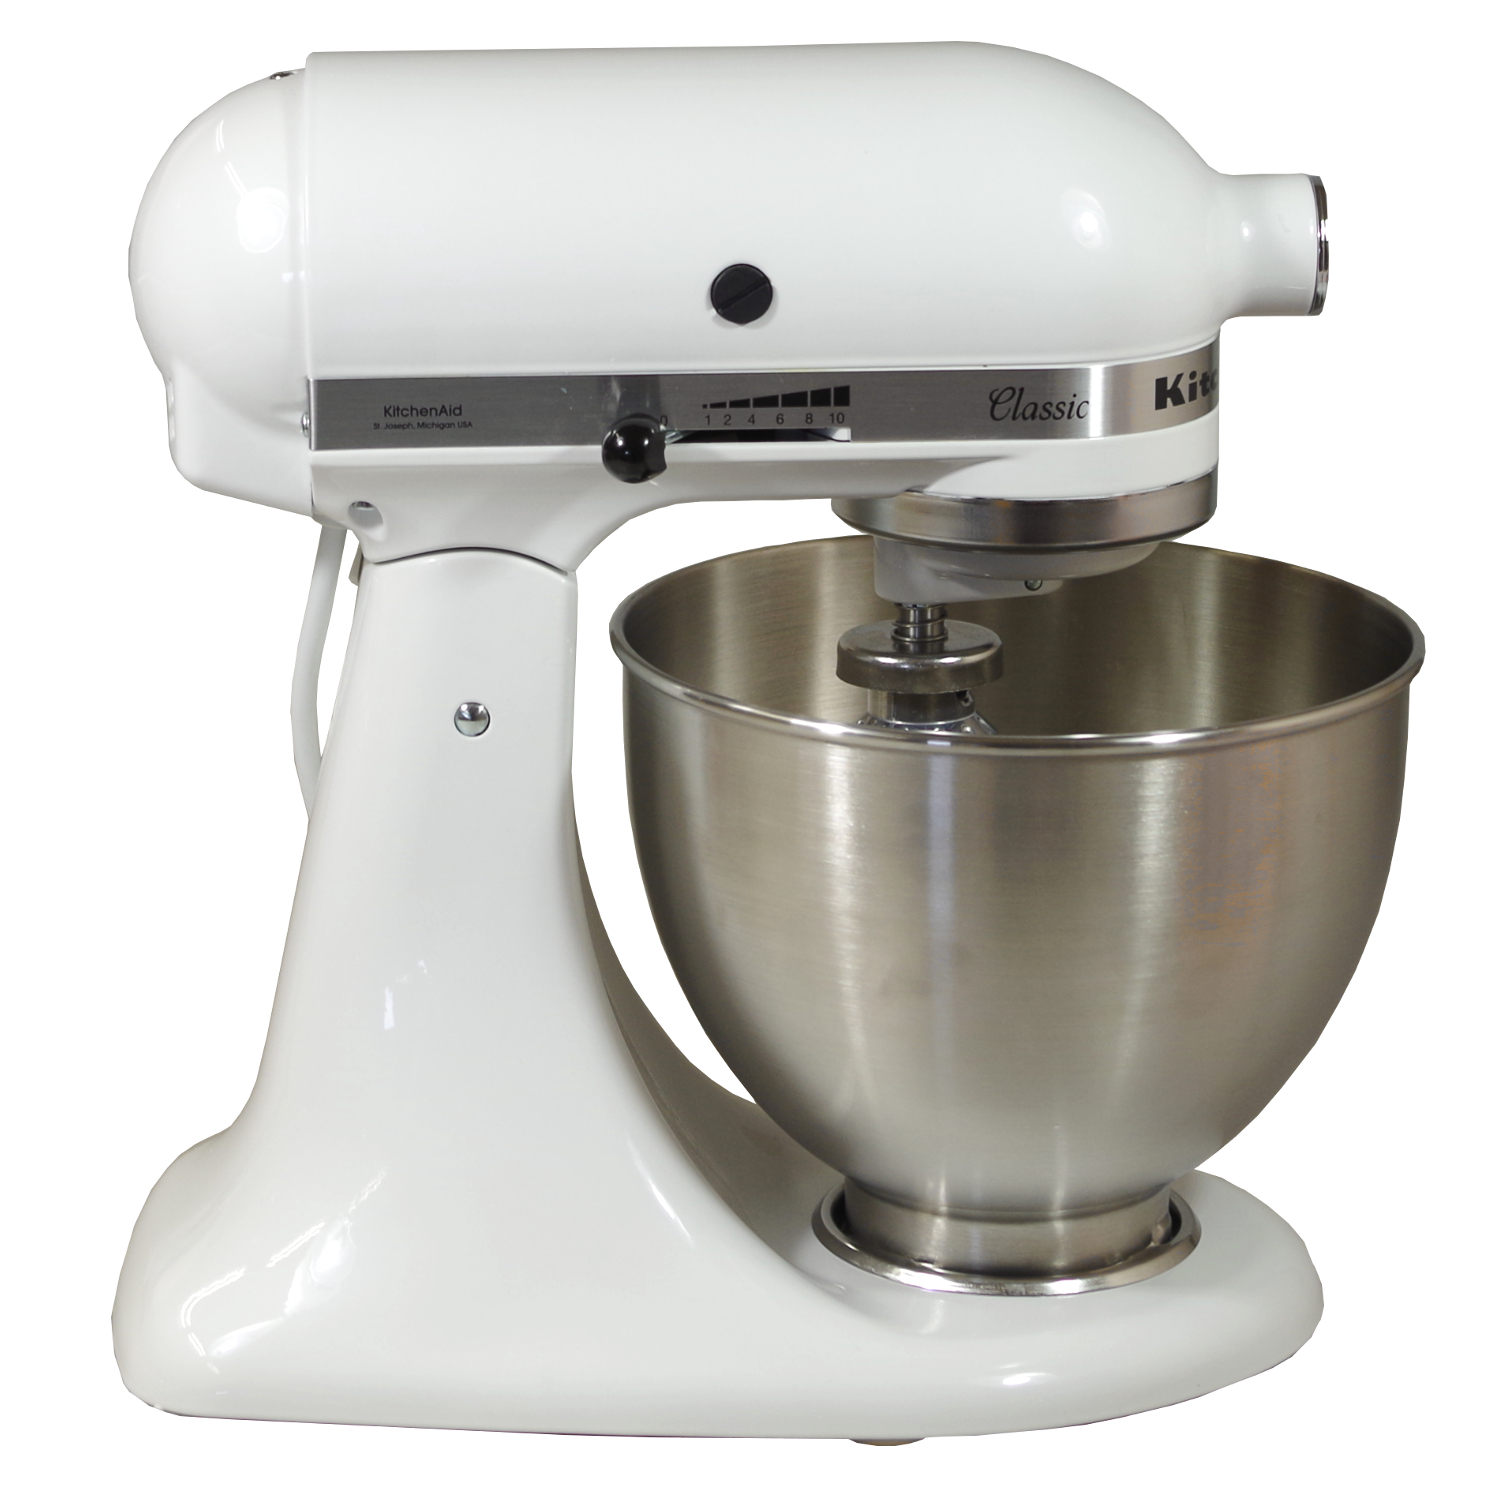 kitchenaid k chenmaschine 5k45ssewh4 standmixer 250w 10 stufen wei b ware ebay. Black Bedroom Furniture Sets. Home Design Ideas